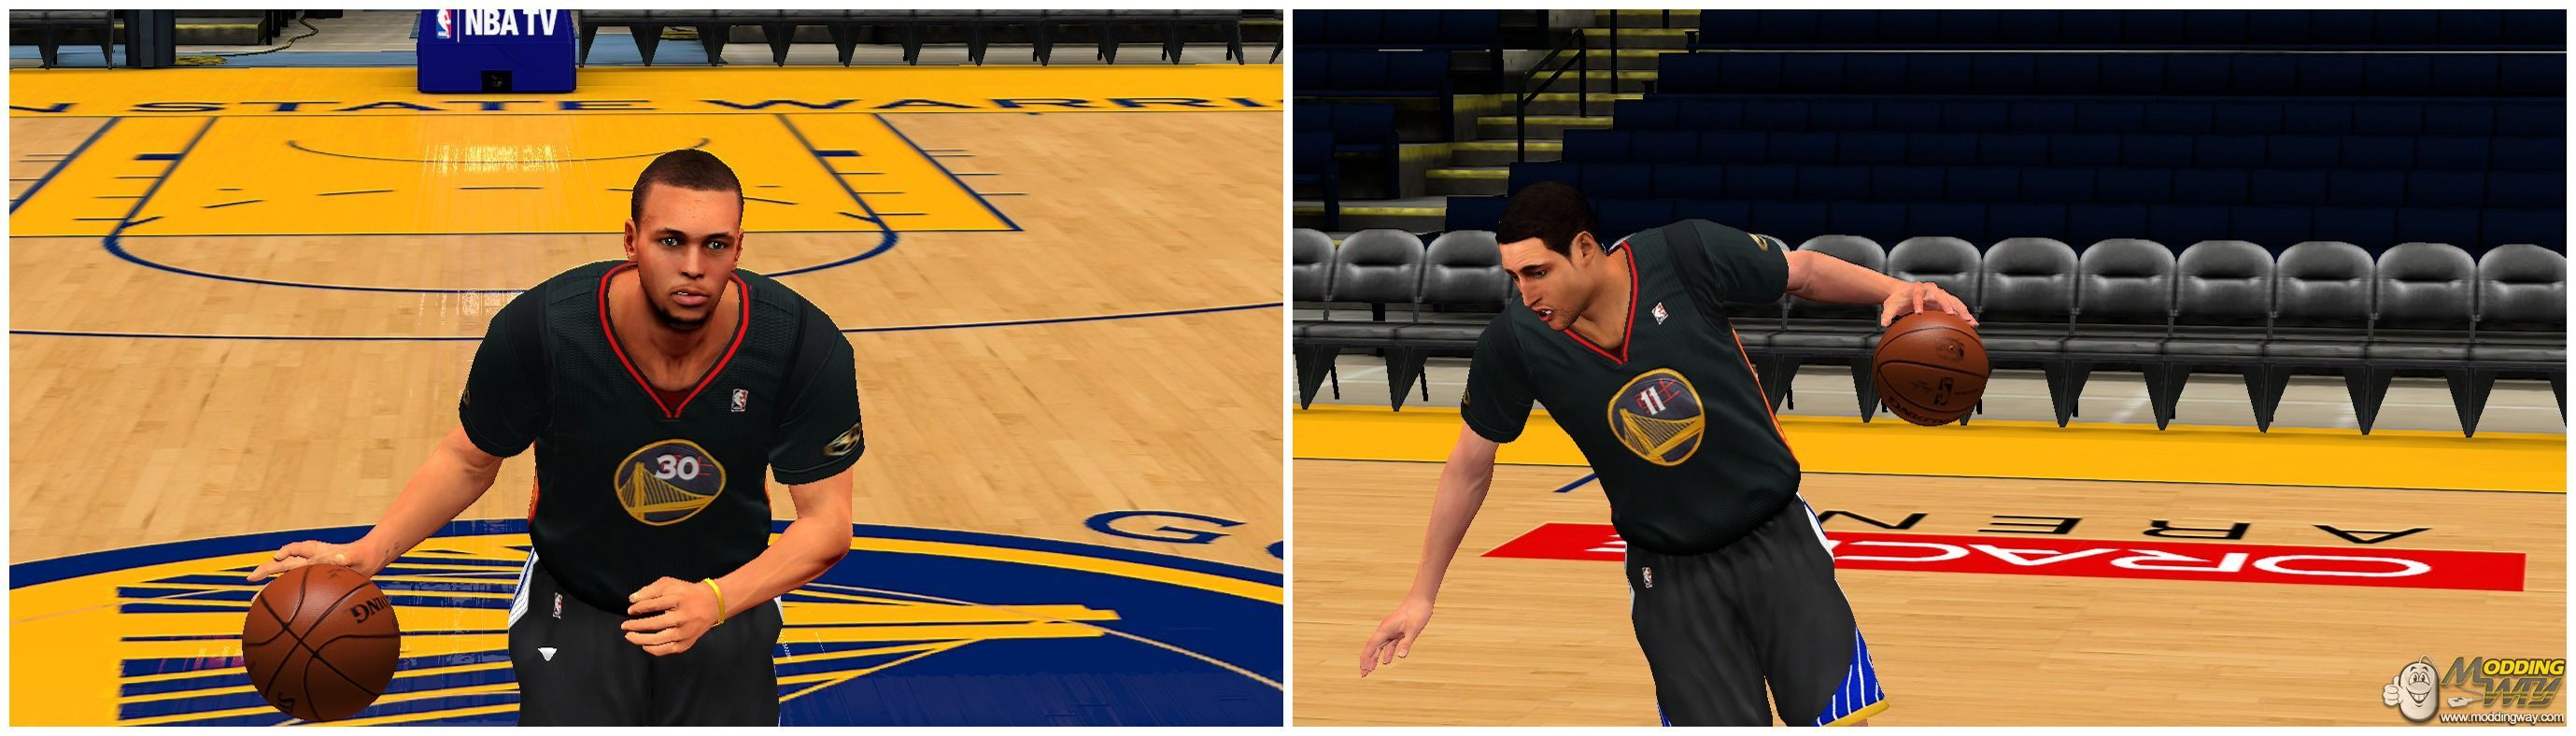 b503e144a010 ... chinese new year warriors jersey v1 nba 2k14 at moddingway